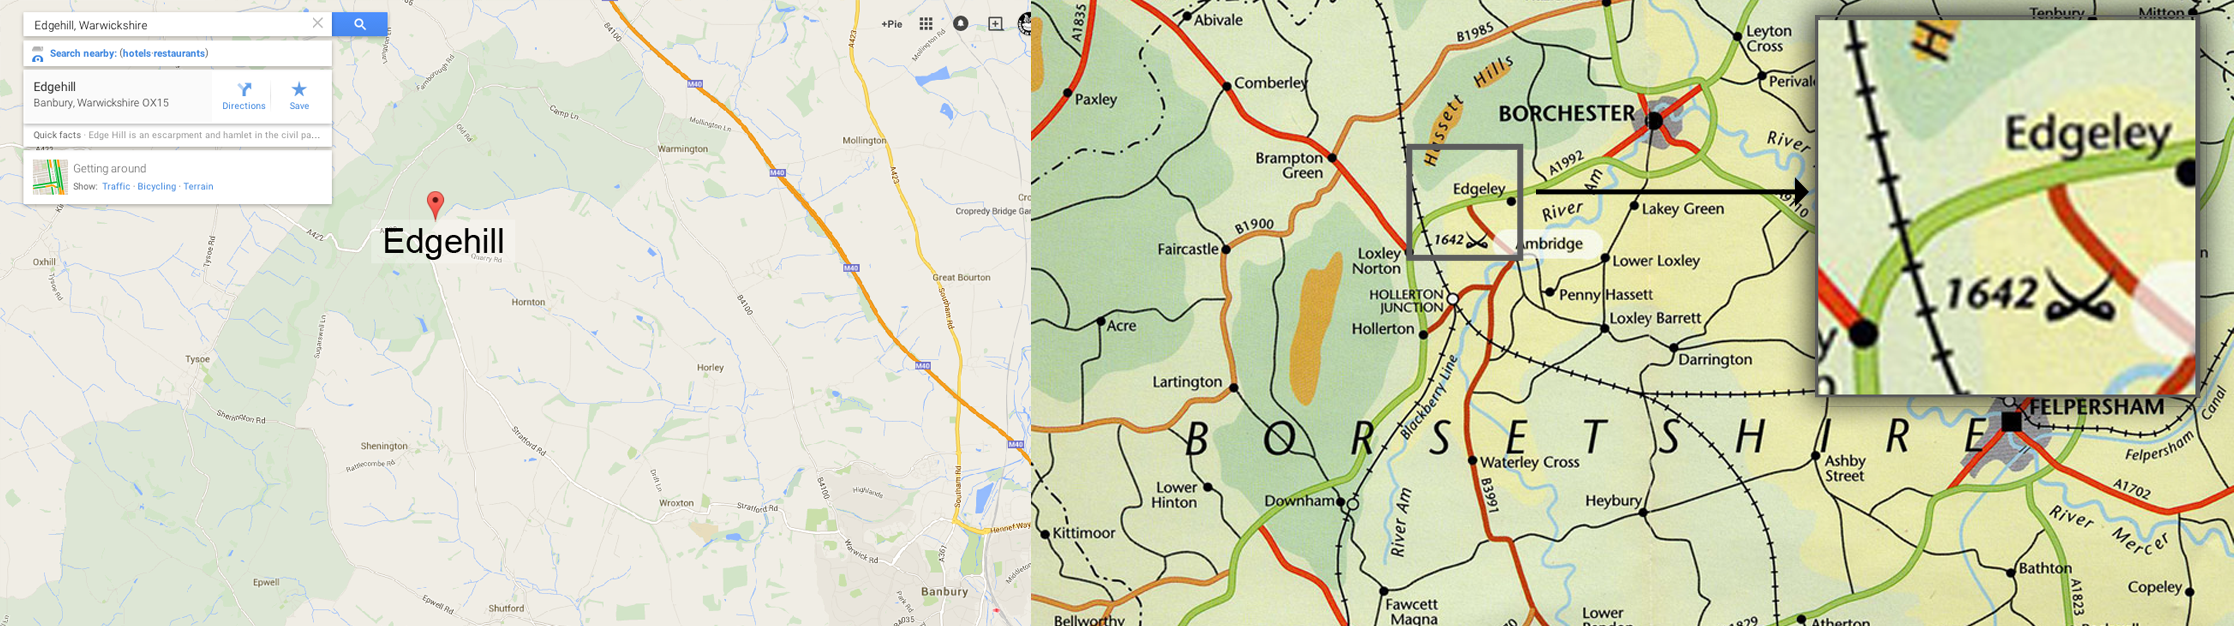 Location of Edgehill vs Battlefield and town of Edgeley